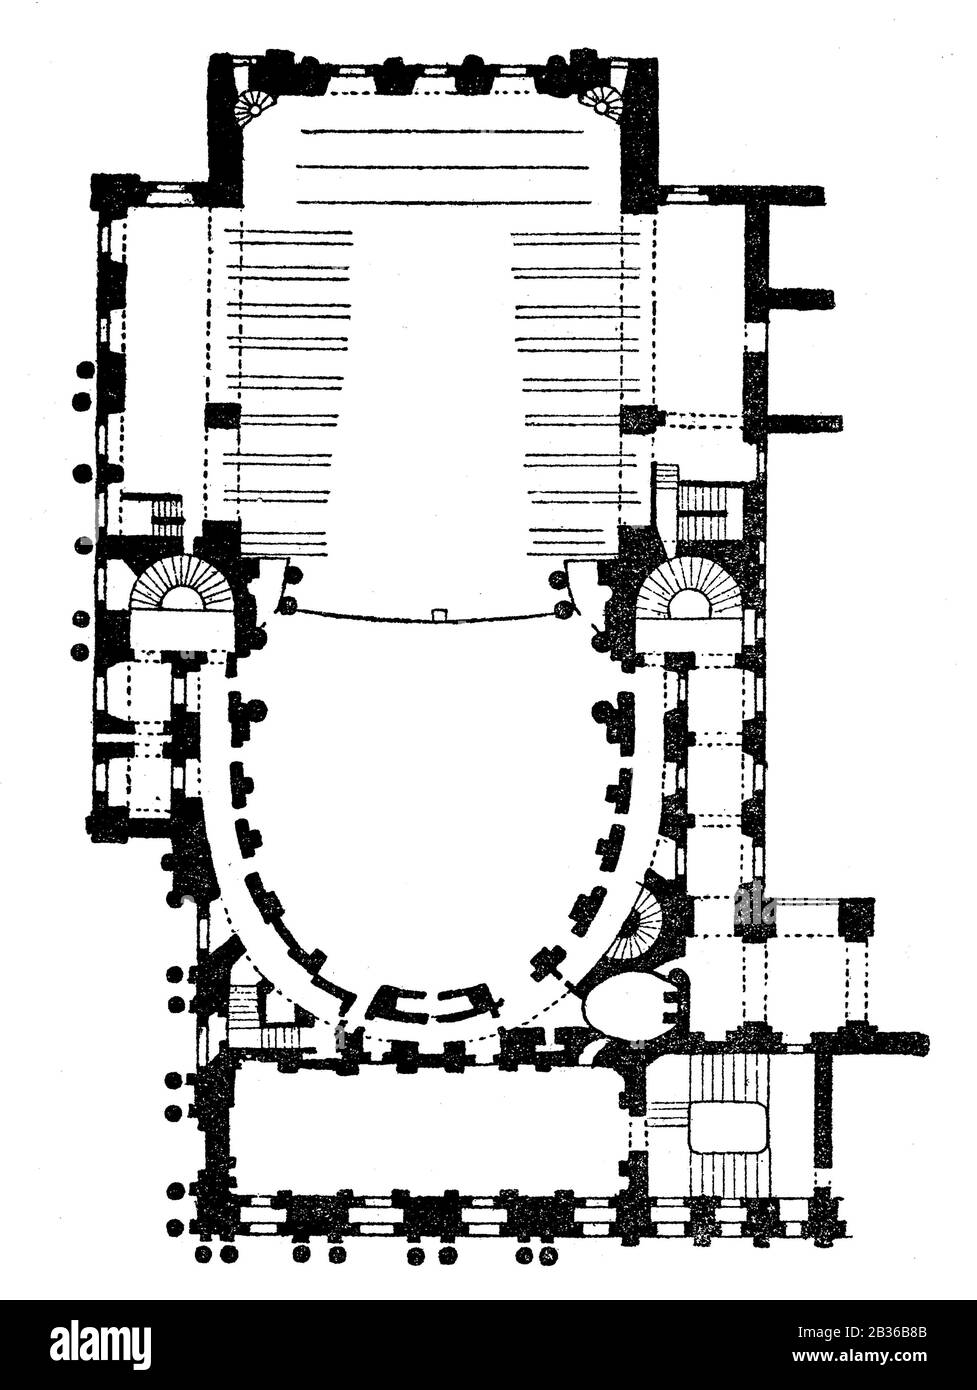 Ground plan of the Royal Opera of Versailles, France, 1860s Stock Photo